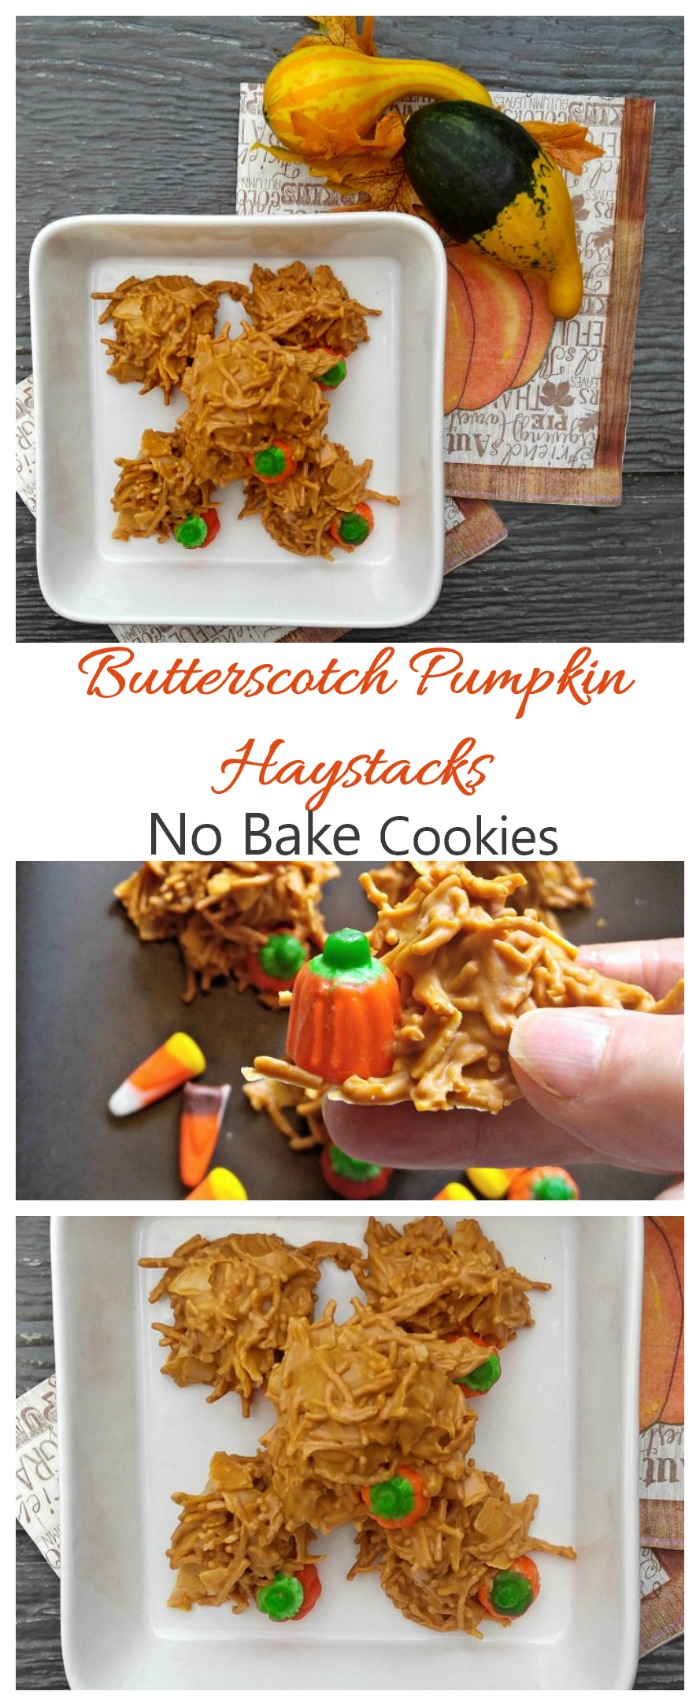 These pumpkin haystack cookies are made with chow mien noodles and butterscotch. I love the addition of the candy pumpkins. #butterscotchhaystacks #pumpkincookies